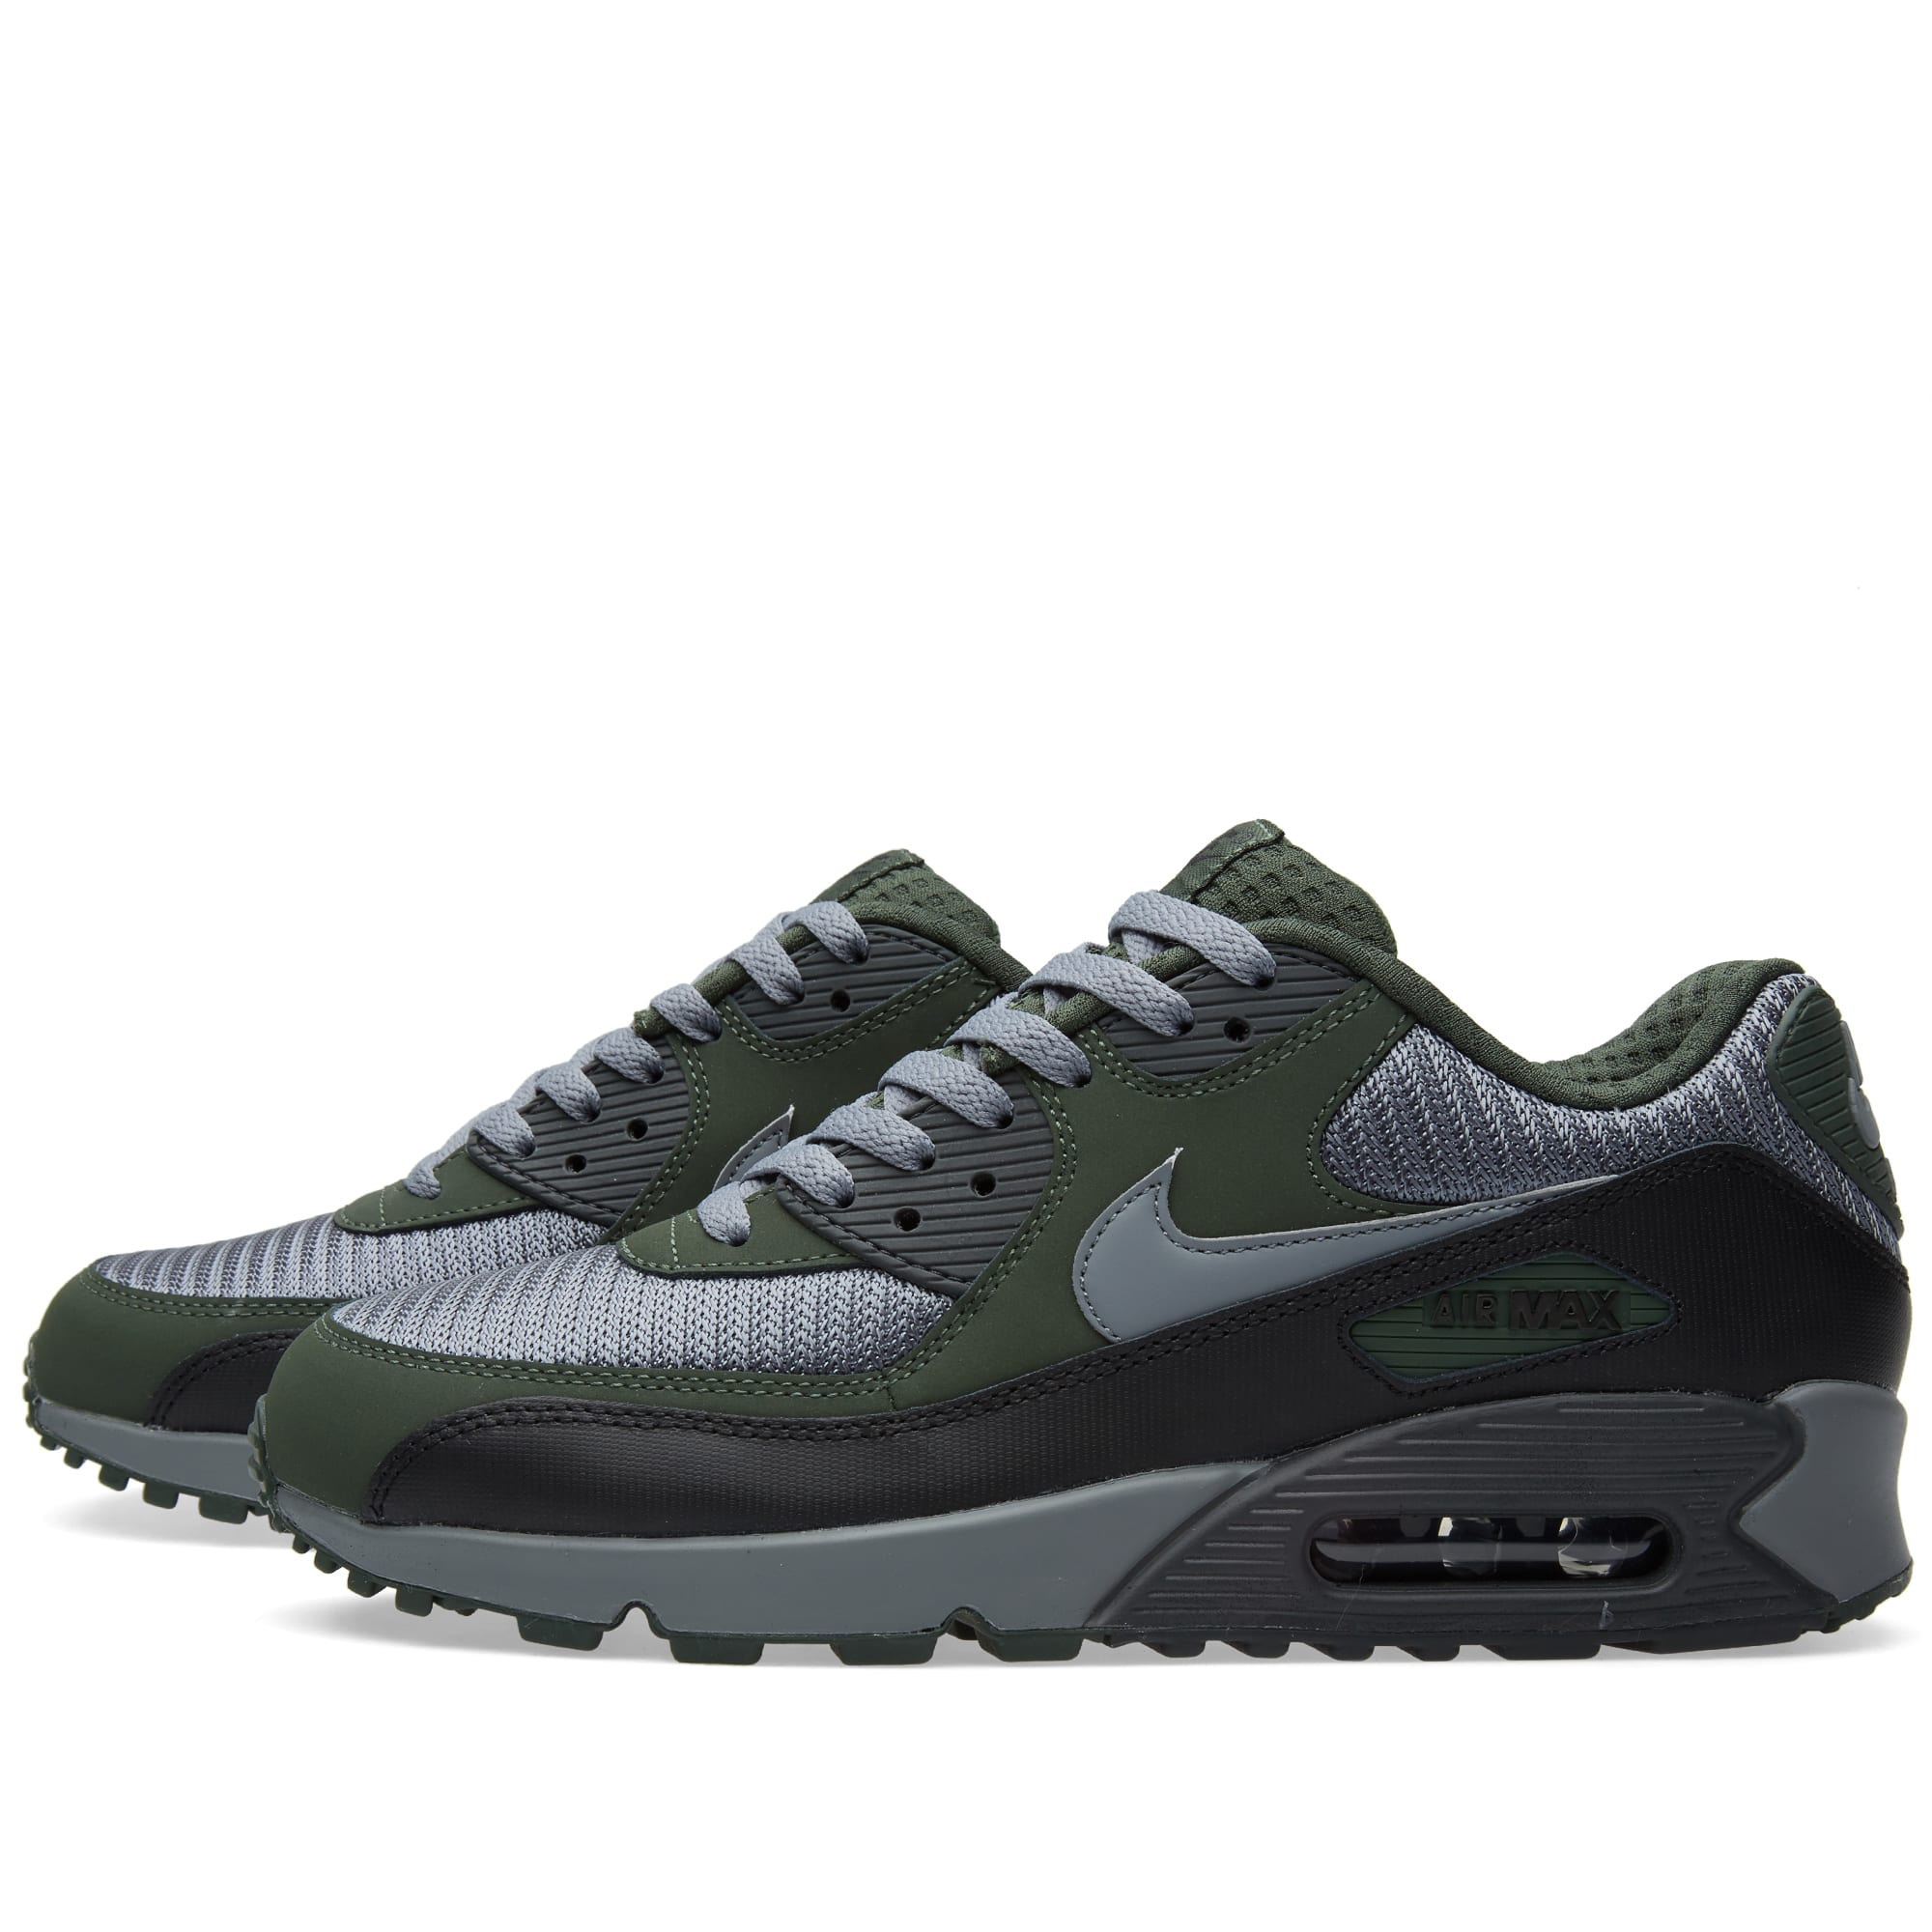 brand new 3d8f8 da31d Nike Air Max 90 Essential Cool Grey   END. nike air max 90 essential cool  grey